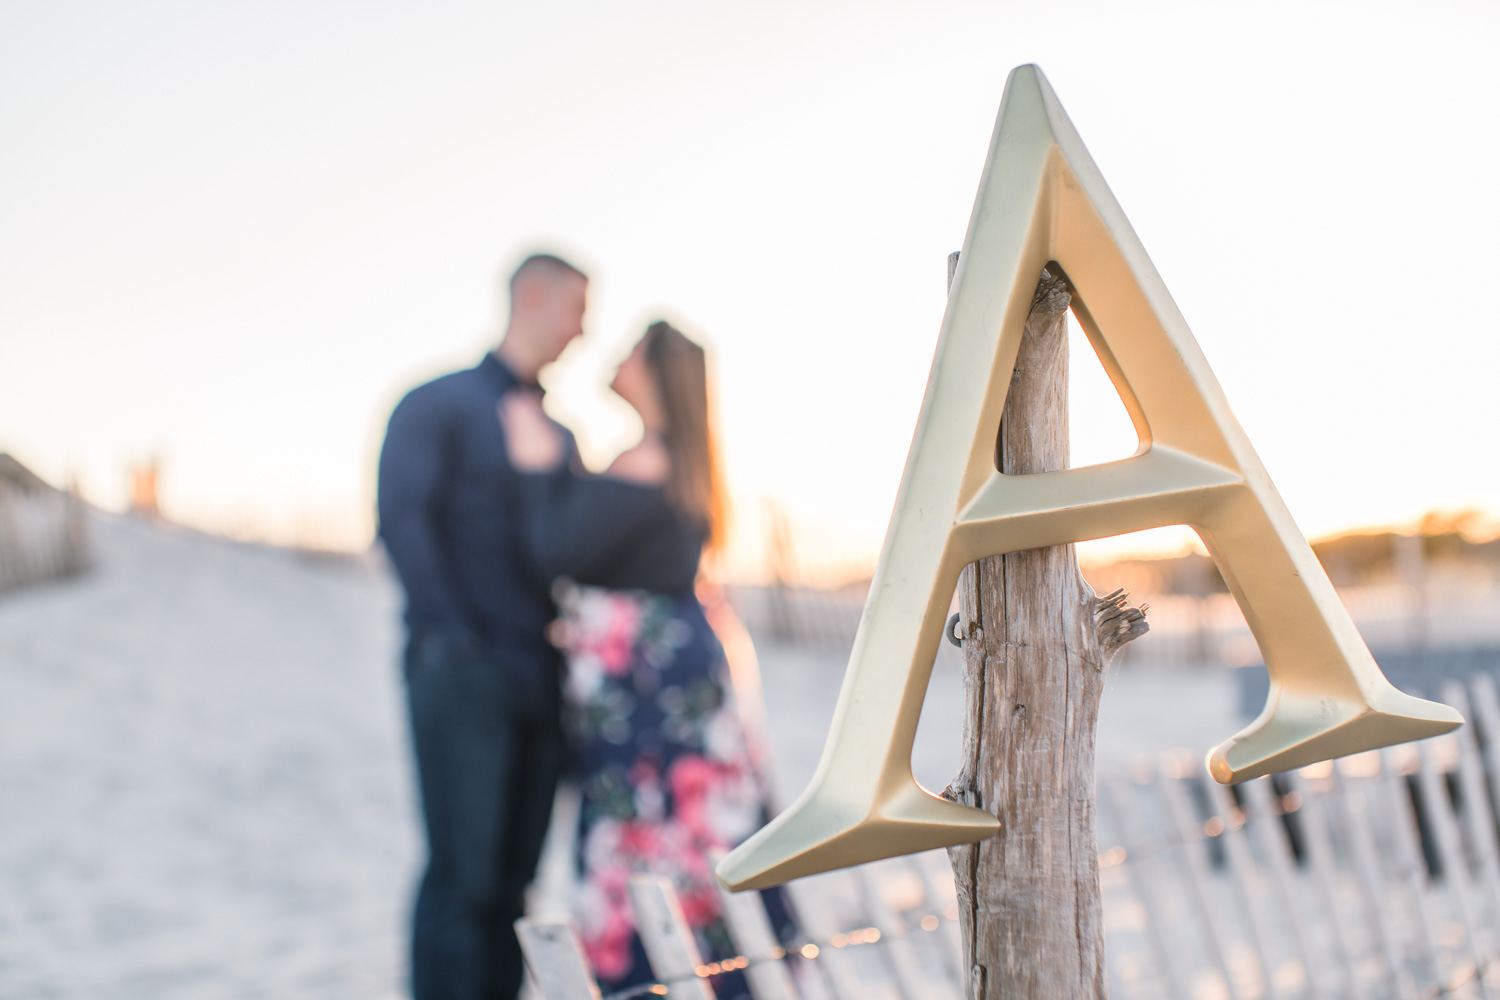 lbi-wedding-photographer-lbi-engagement-dan-beckie--10.jpg